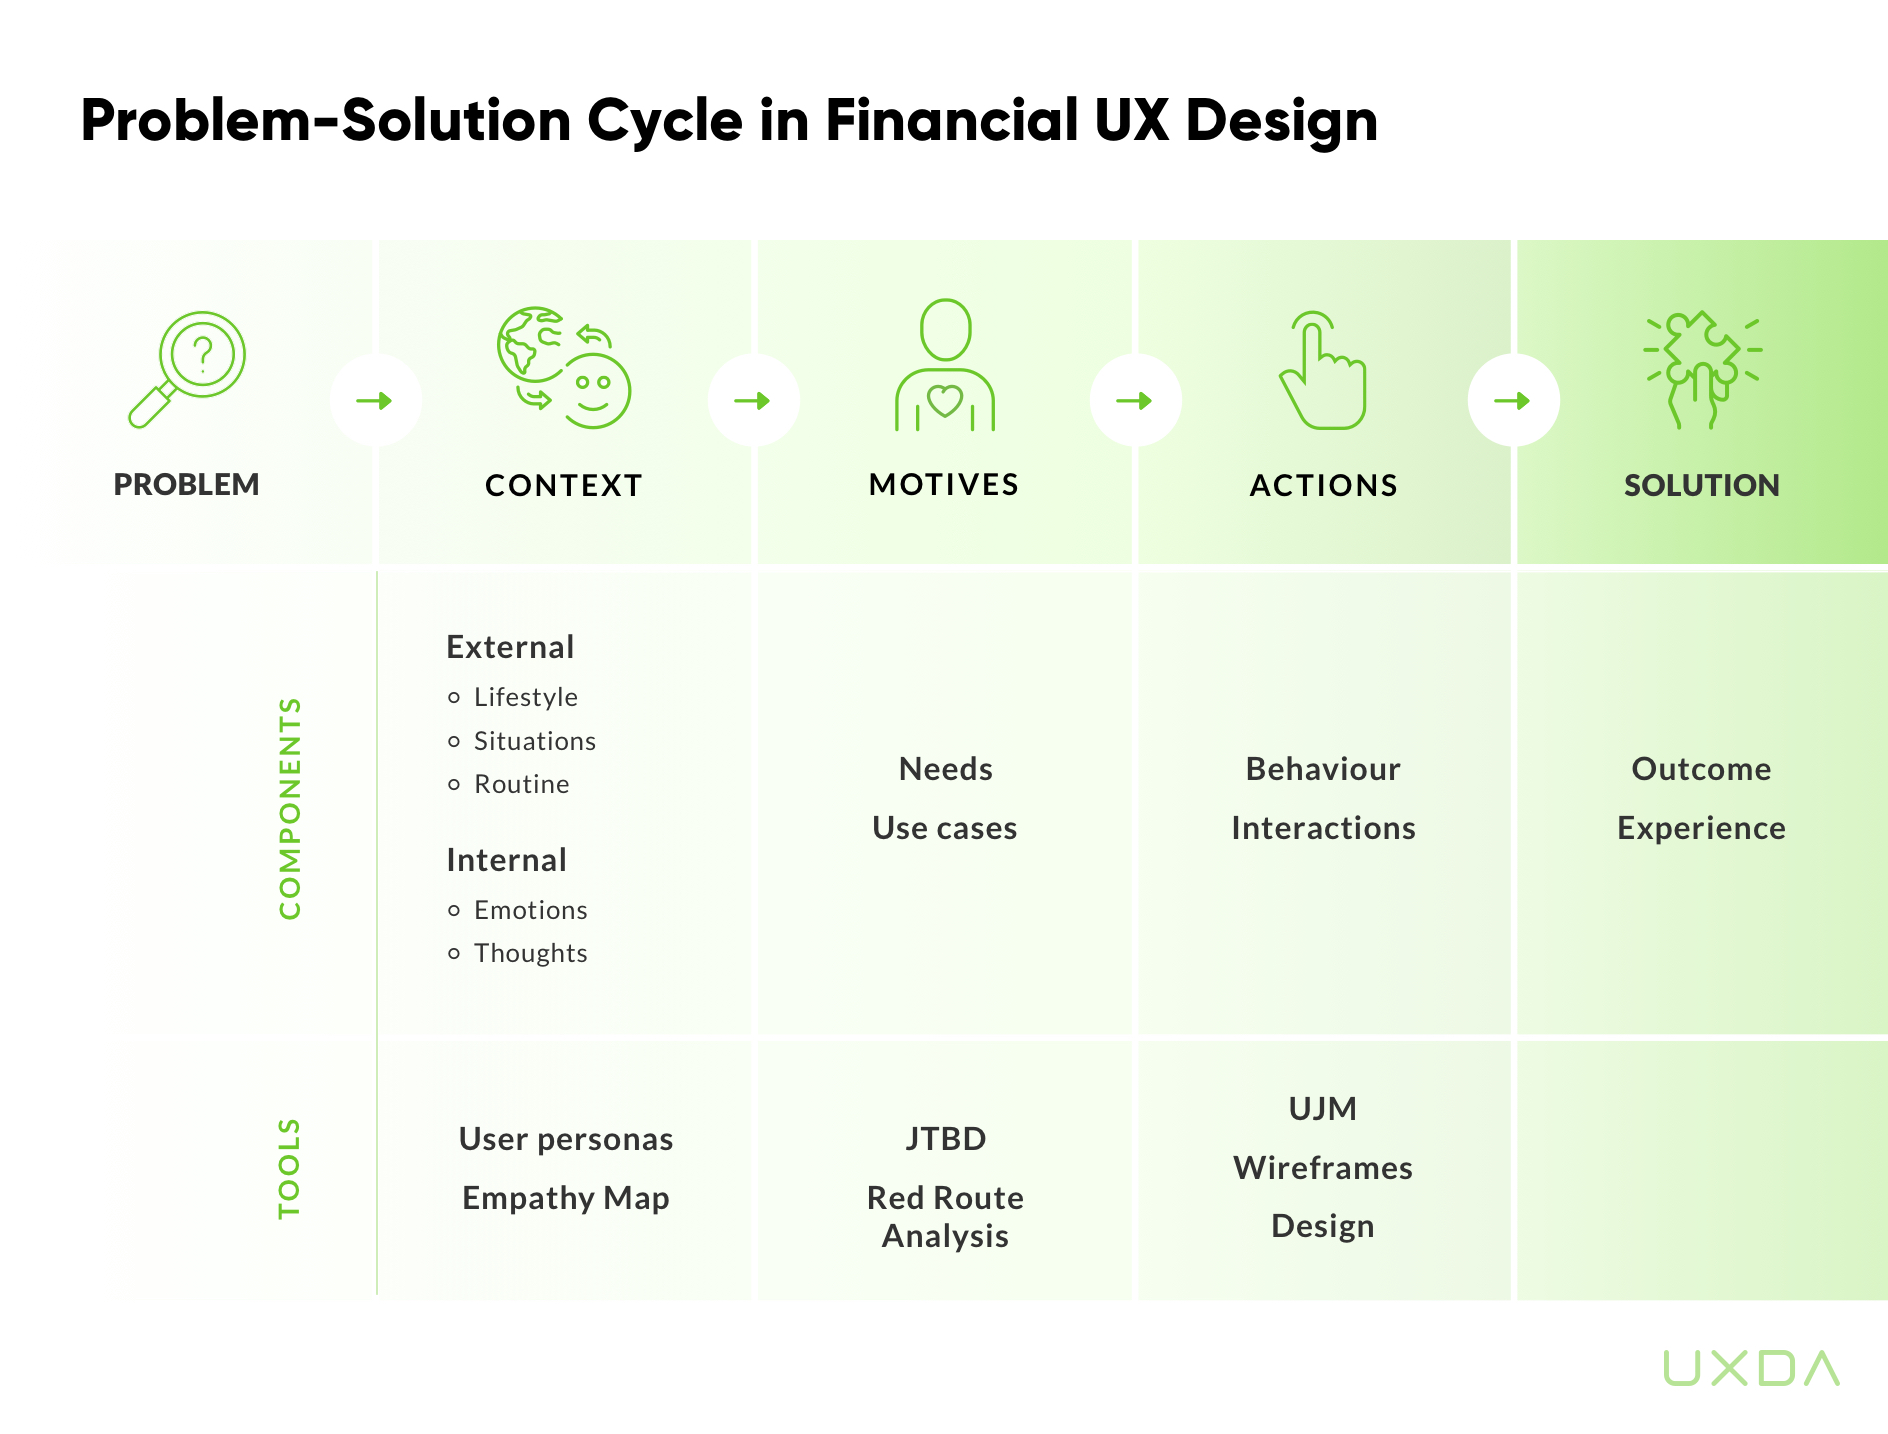 digital-financial-services-ux-problem-solution-cycle-1601343091.jpg